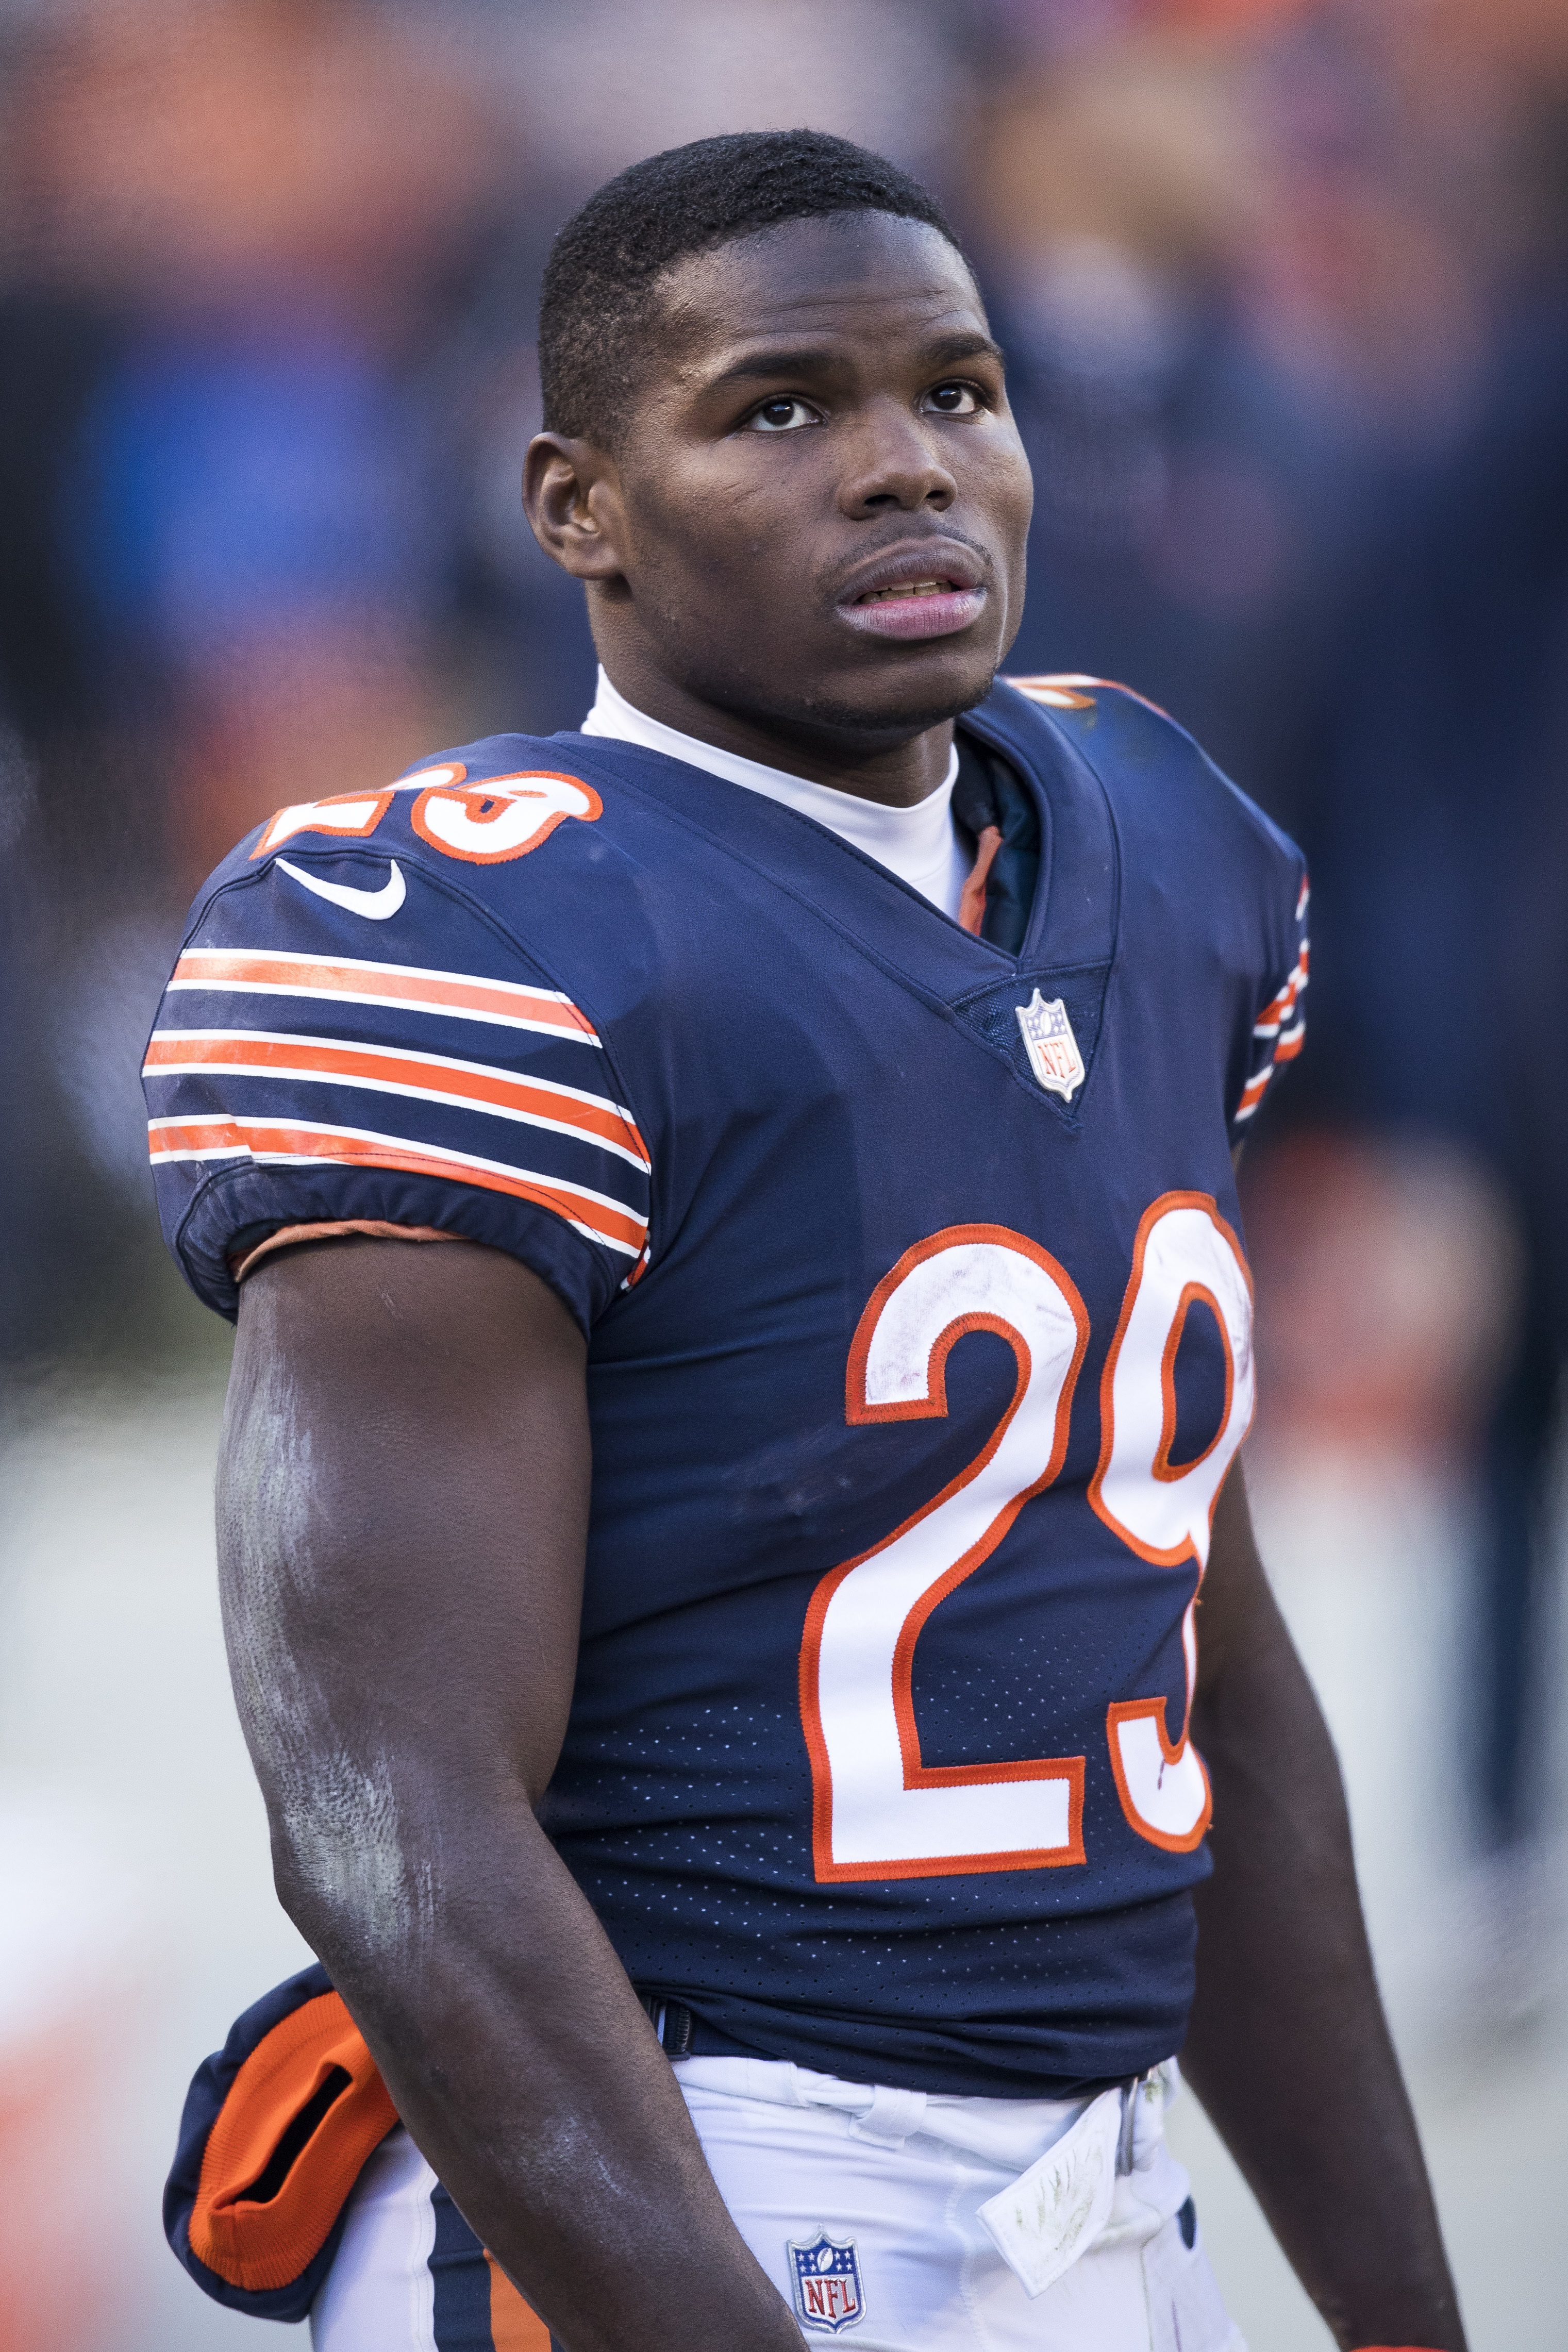 Tarik Cohen's twin brother Tyrell was found dead Sunday.